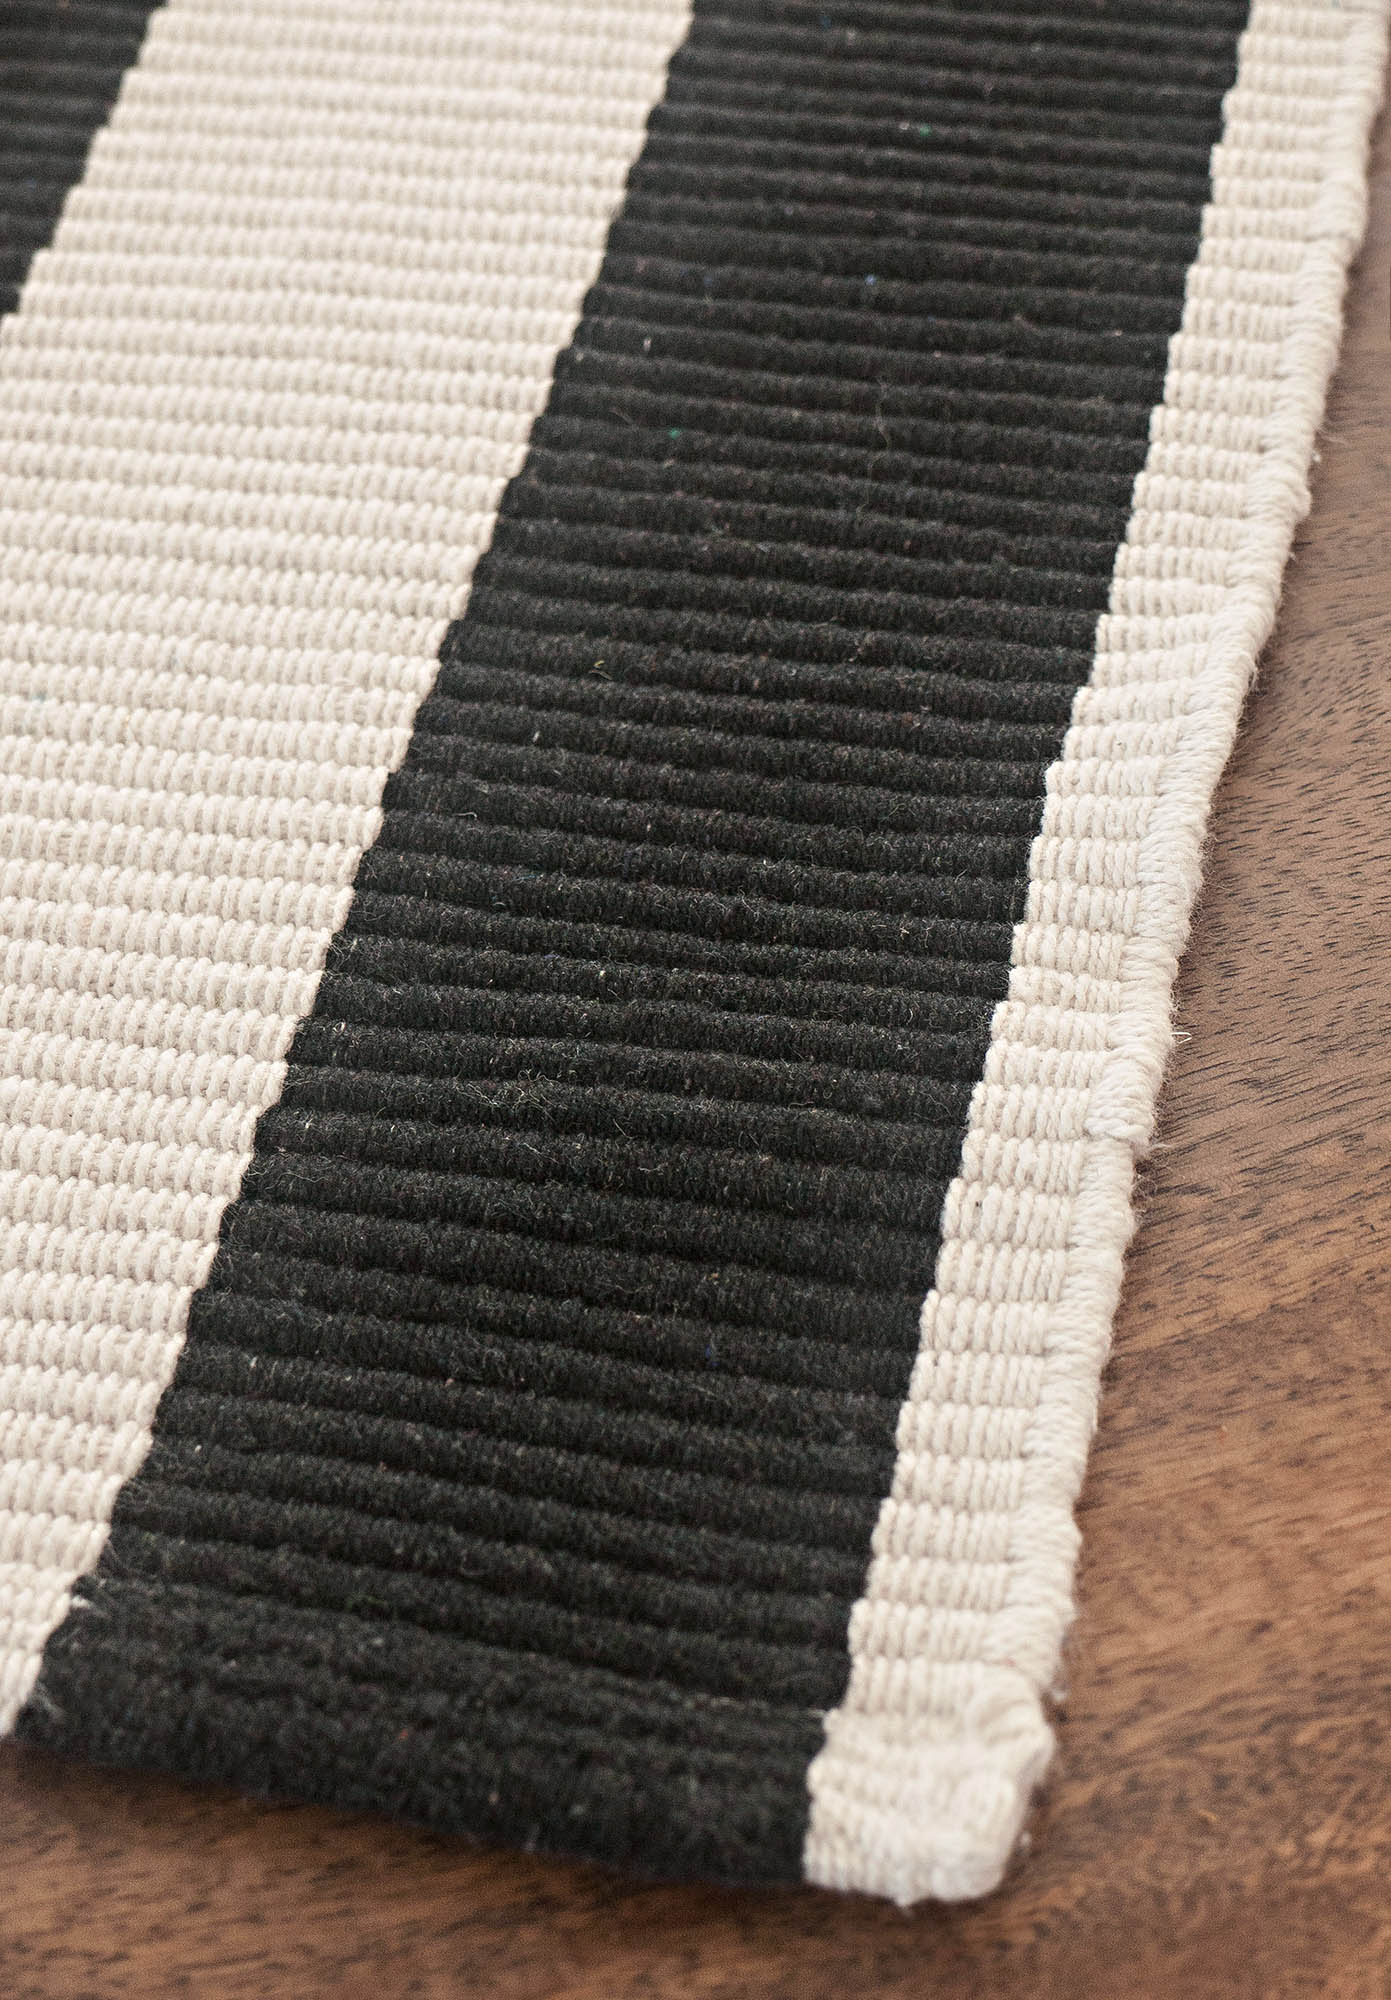 Black And White Striped Rug. View Full Size Black And